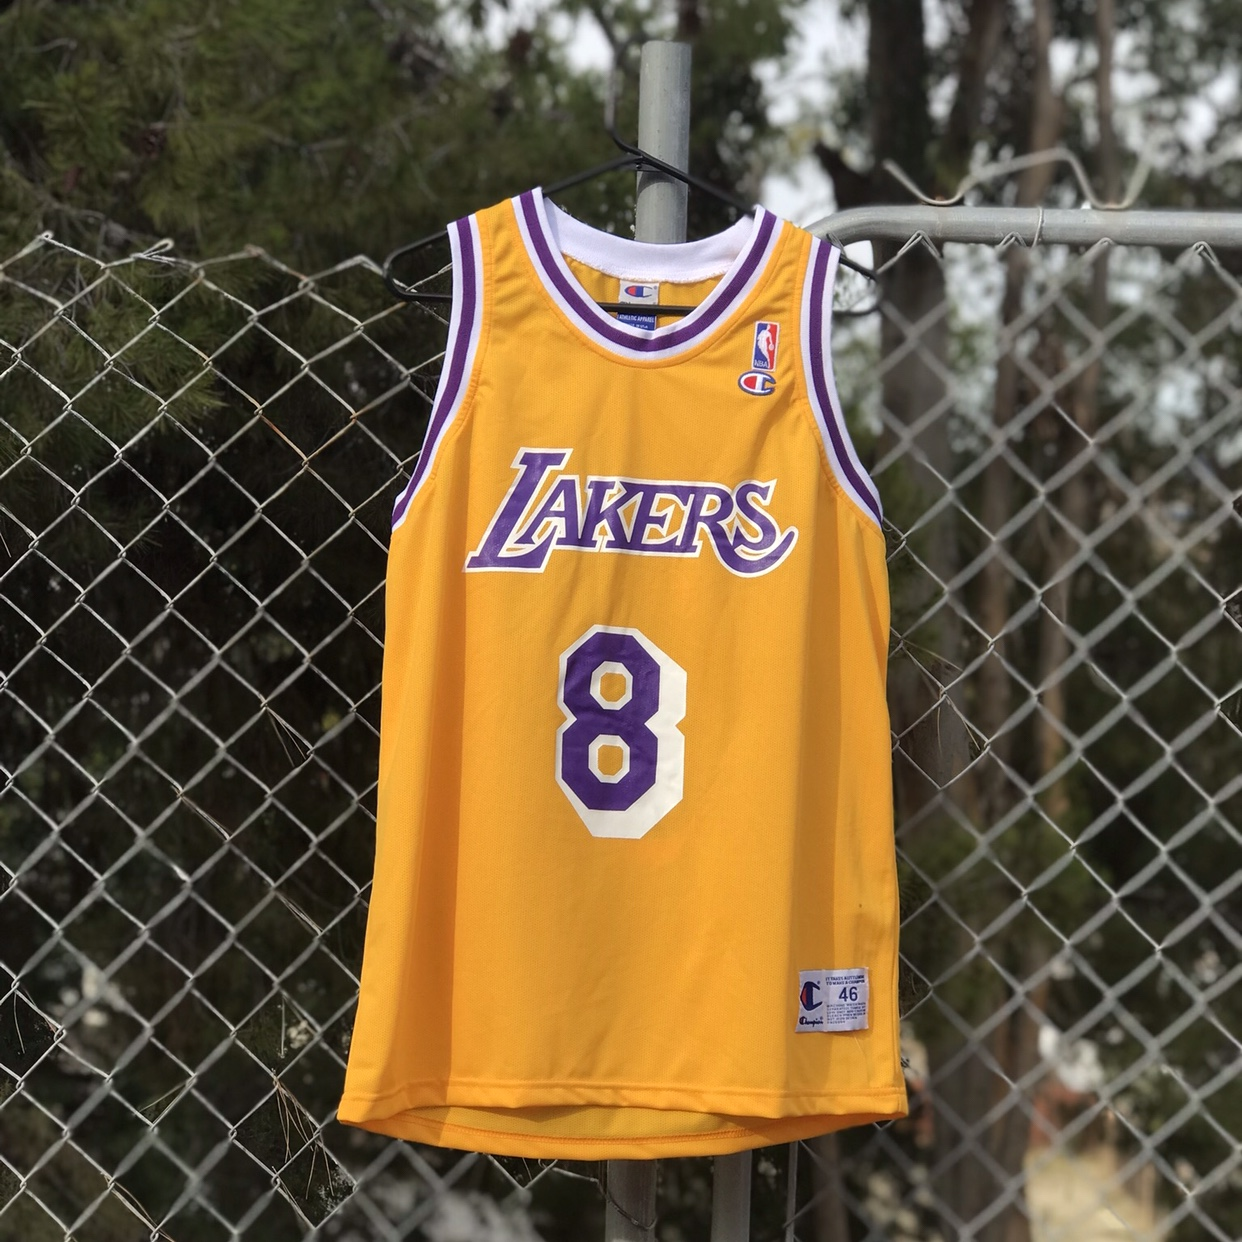 kobe bryant old jersey Off 58% - www.bashhguidelines.org